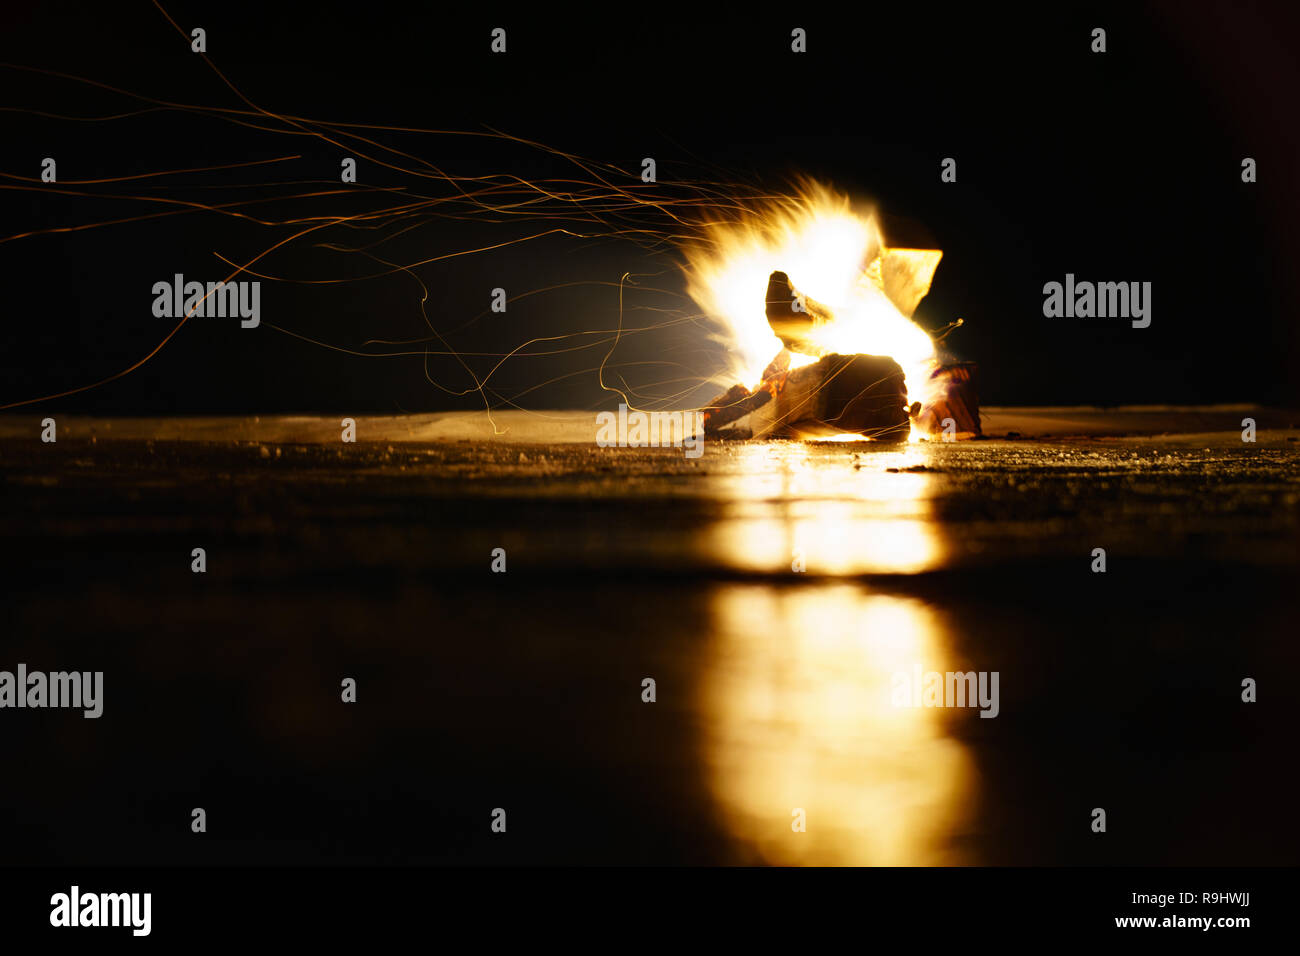 Camp fire reflection on ice at night - Stock Image